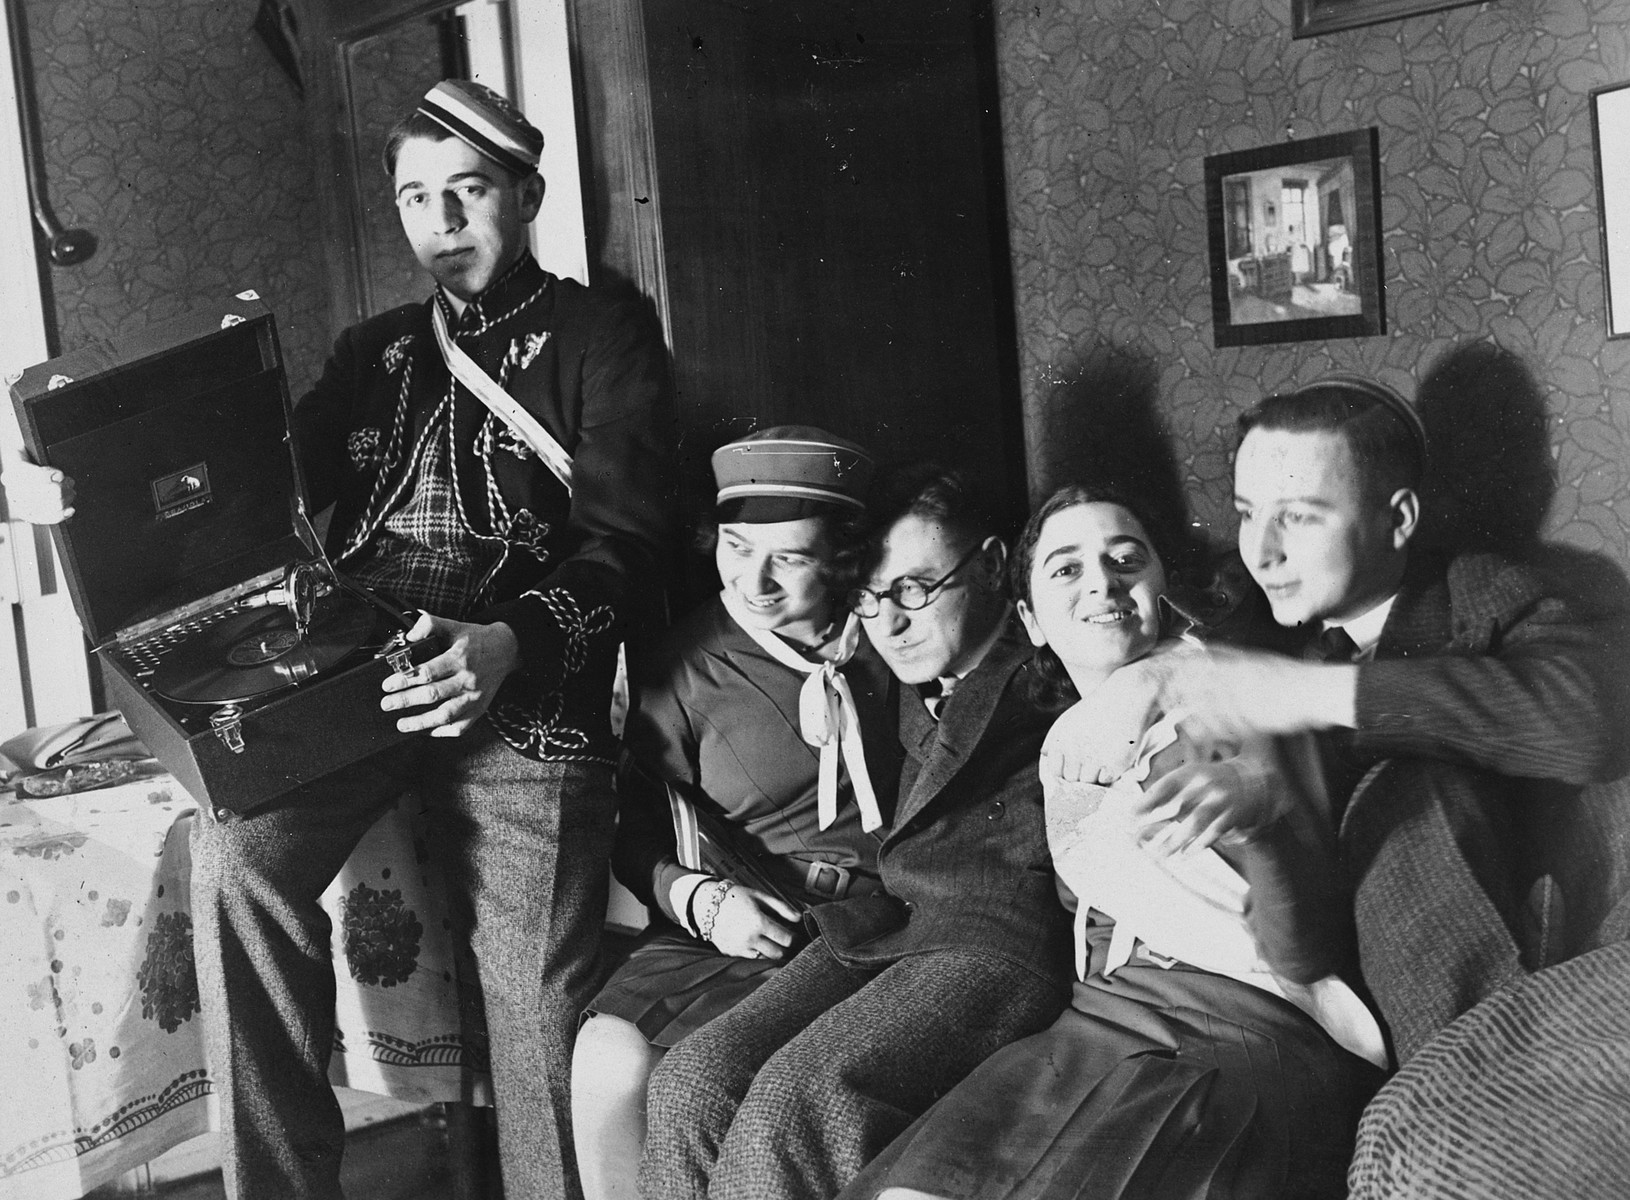 Five German-Jewish university students squeeze together on a couch.  One is holding a phonograph.  From left to right are Heinz Bähr, Ruth Bähr and Margot Bähr is second from the right.  Heinz is wearing the cap and jacket of the KC Jewish fraternity.